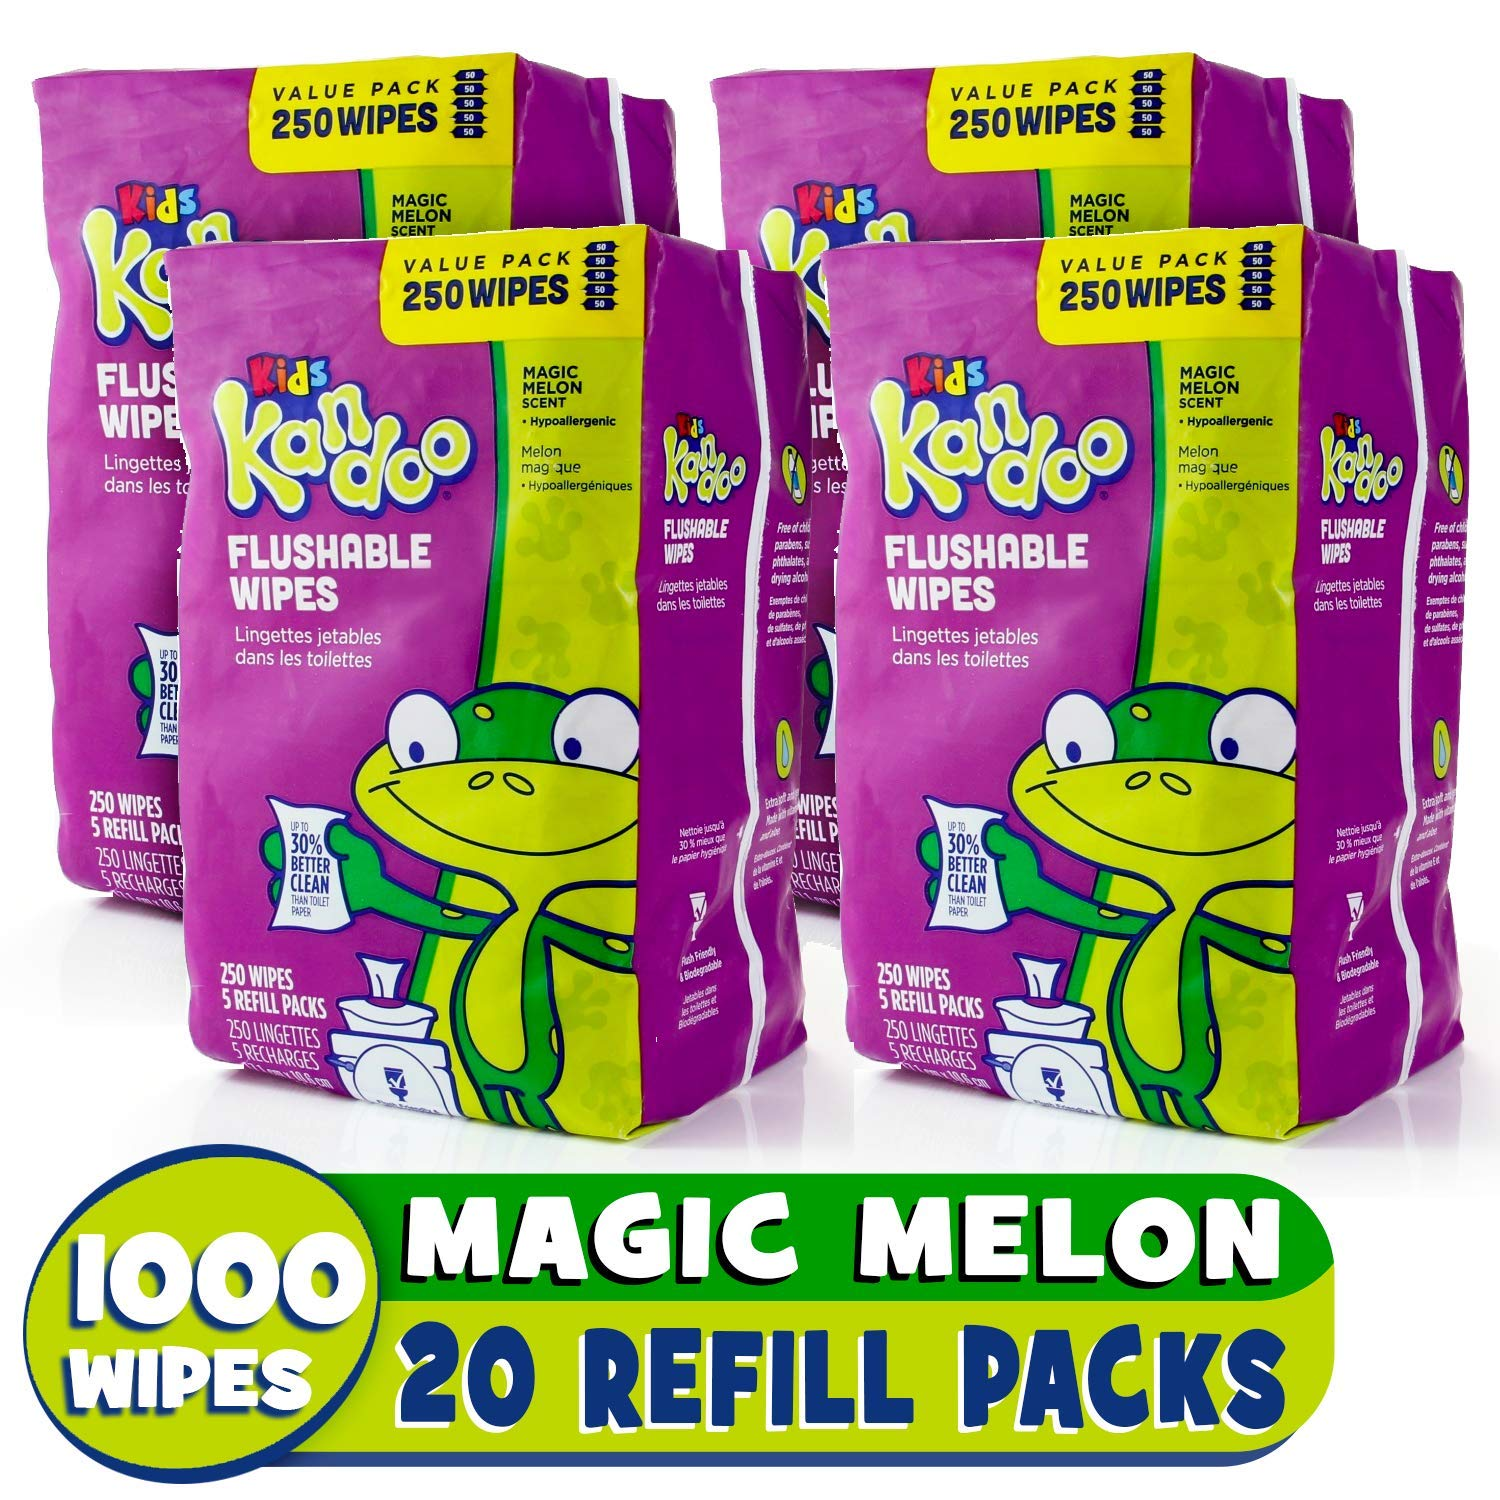 Flushable Baby Wipes for Kids, Magic Melon by Kandoo, Potty Training Wet Cleansing Cloths Refills, 250 Count per Pack, Pack of 4 by Kandoo (Image #1)